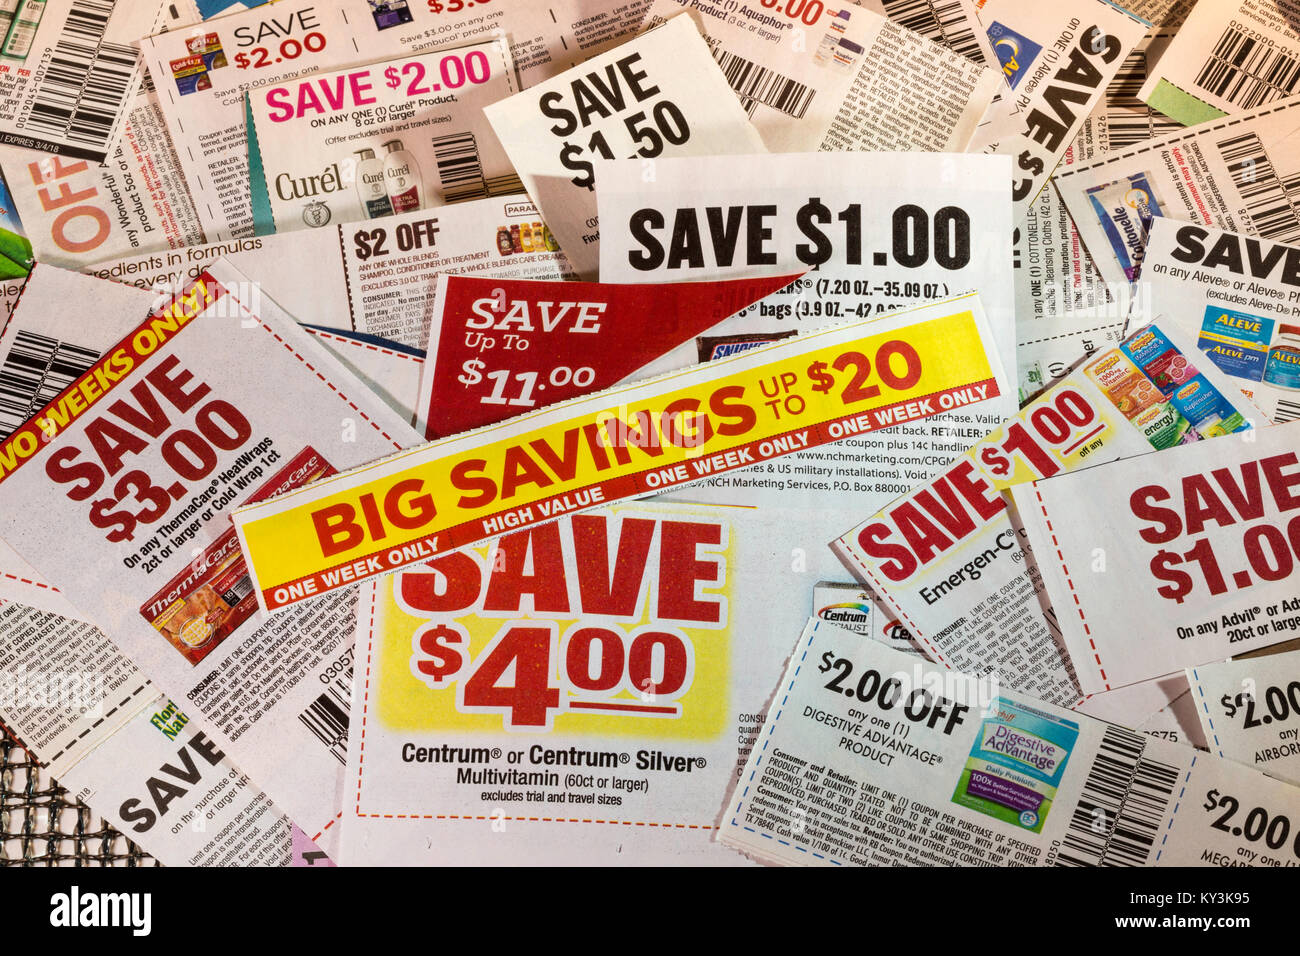 USA TODAY Coupon Codes, Promos & Sales. USA TODAY coupon codes and sales, just follow this link to the website to browse their current offerings. And while you're there, sign up for emails to get alerts about discounts and more, right in your inbox. Paying full price is so last season.